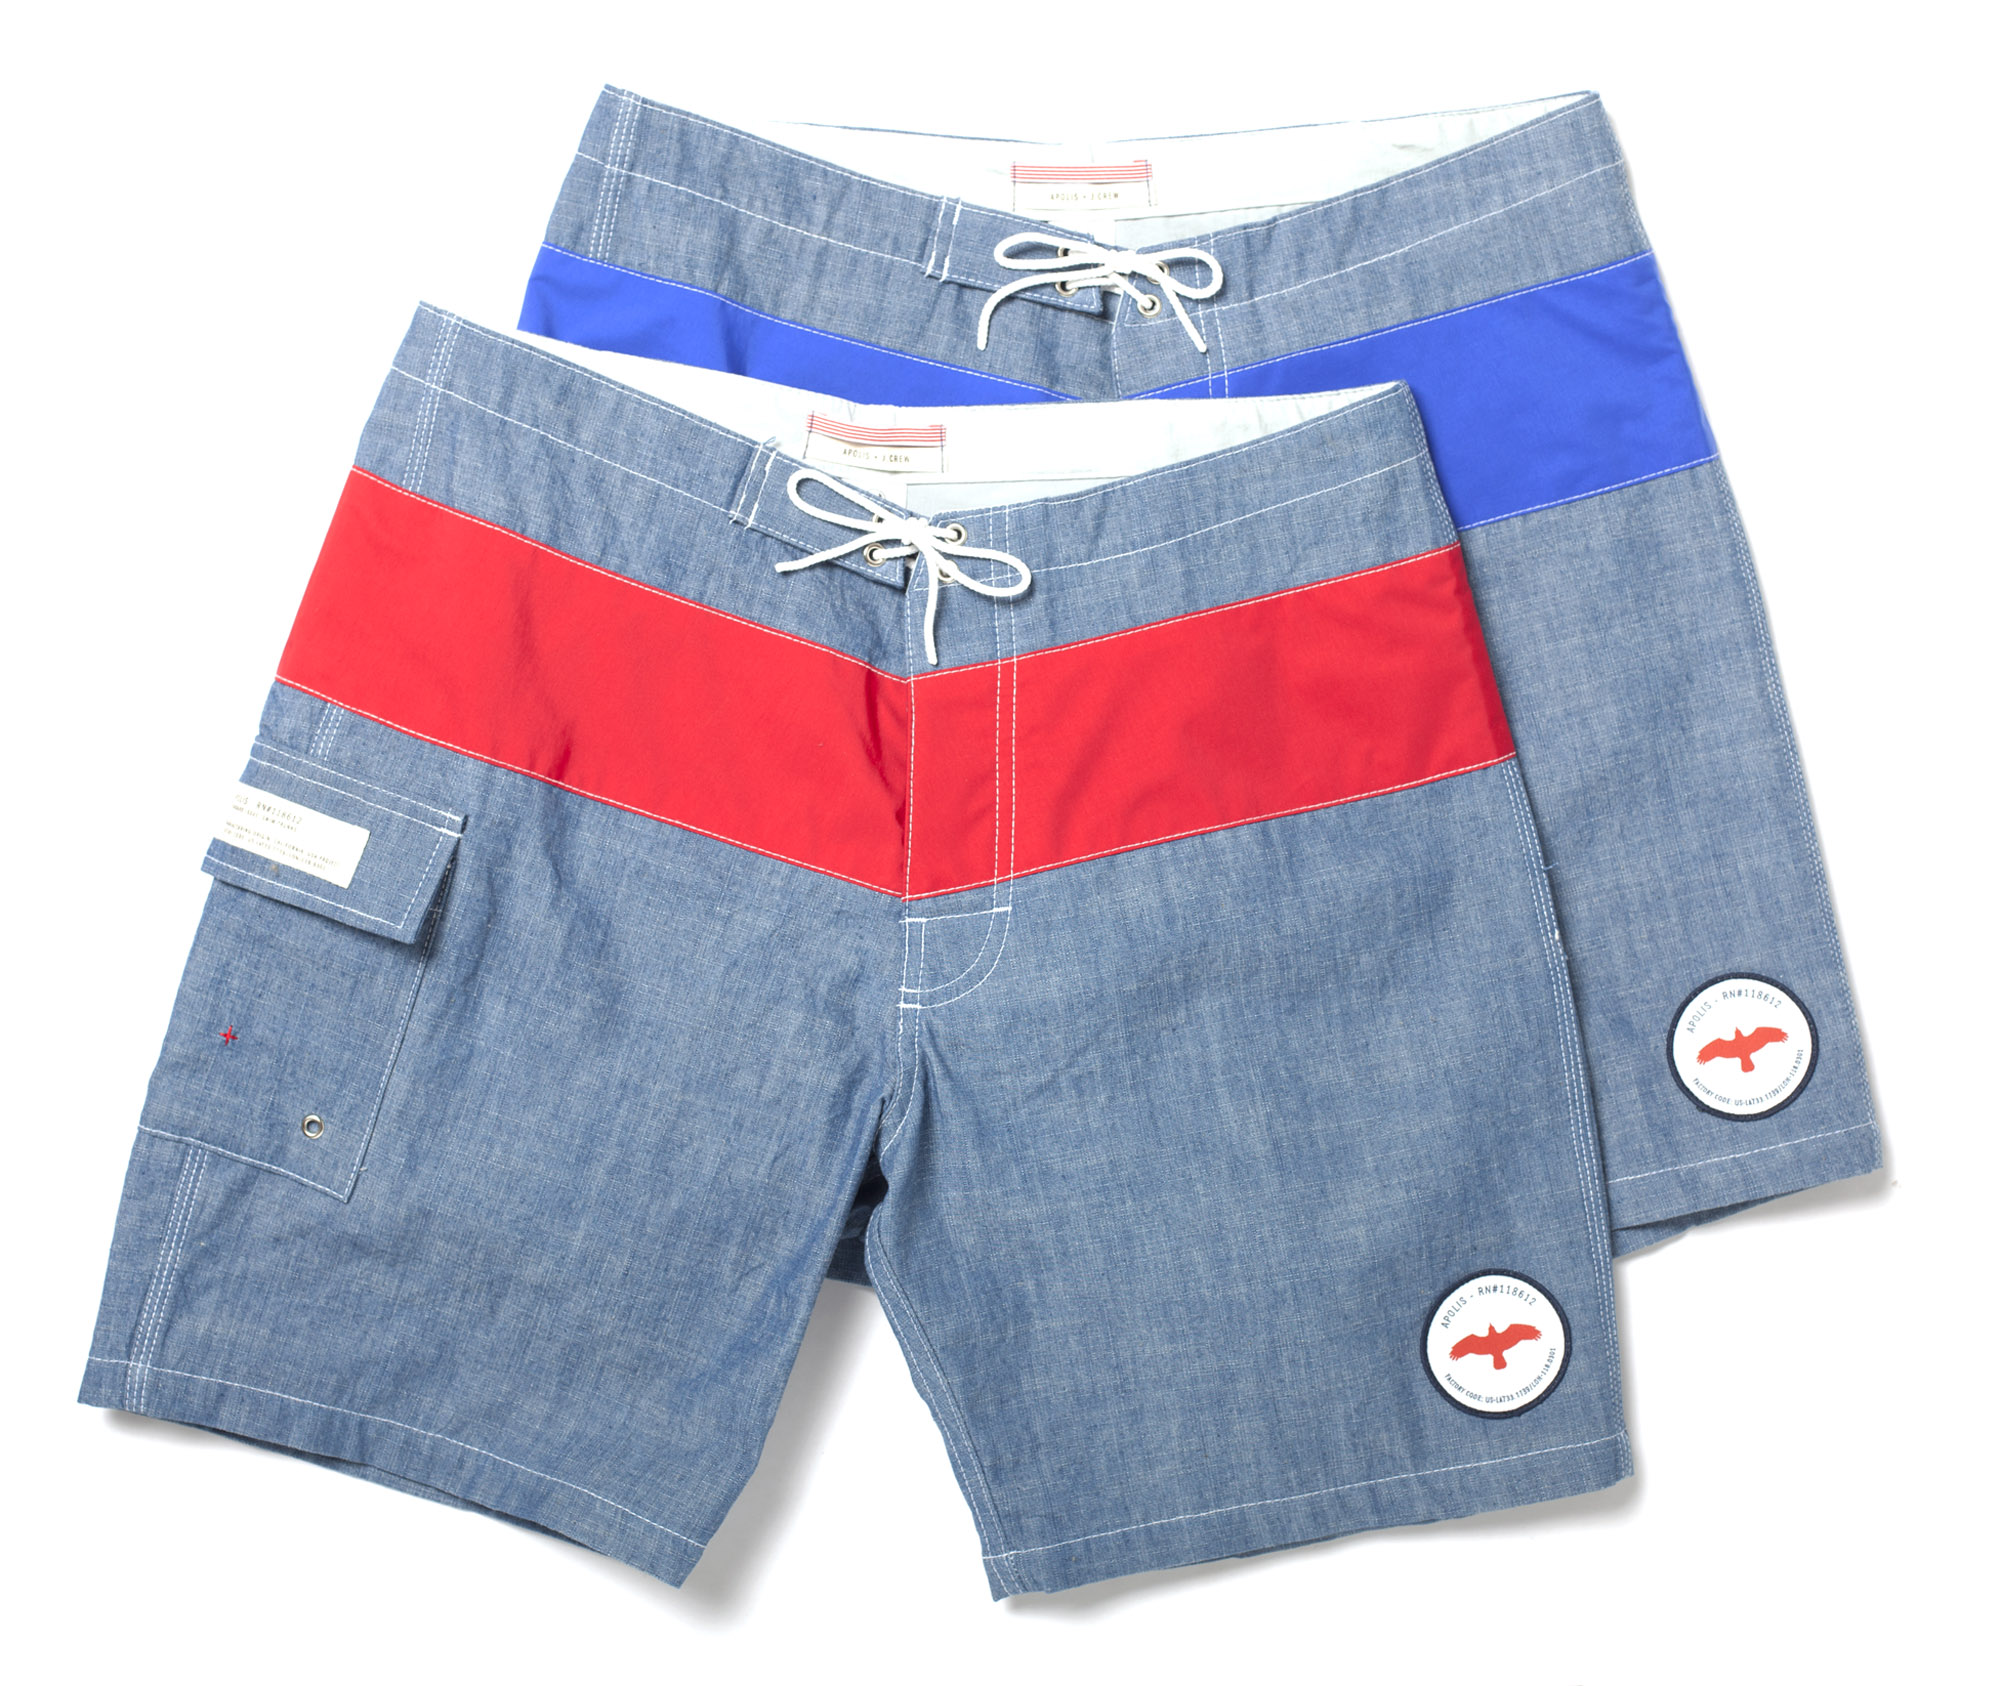 Apolis J.Crew Swim trunks shorts collaboration surf retro price cost sale price buy store retail release stylish mens